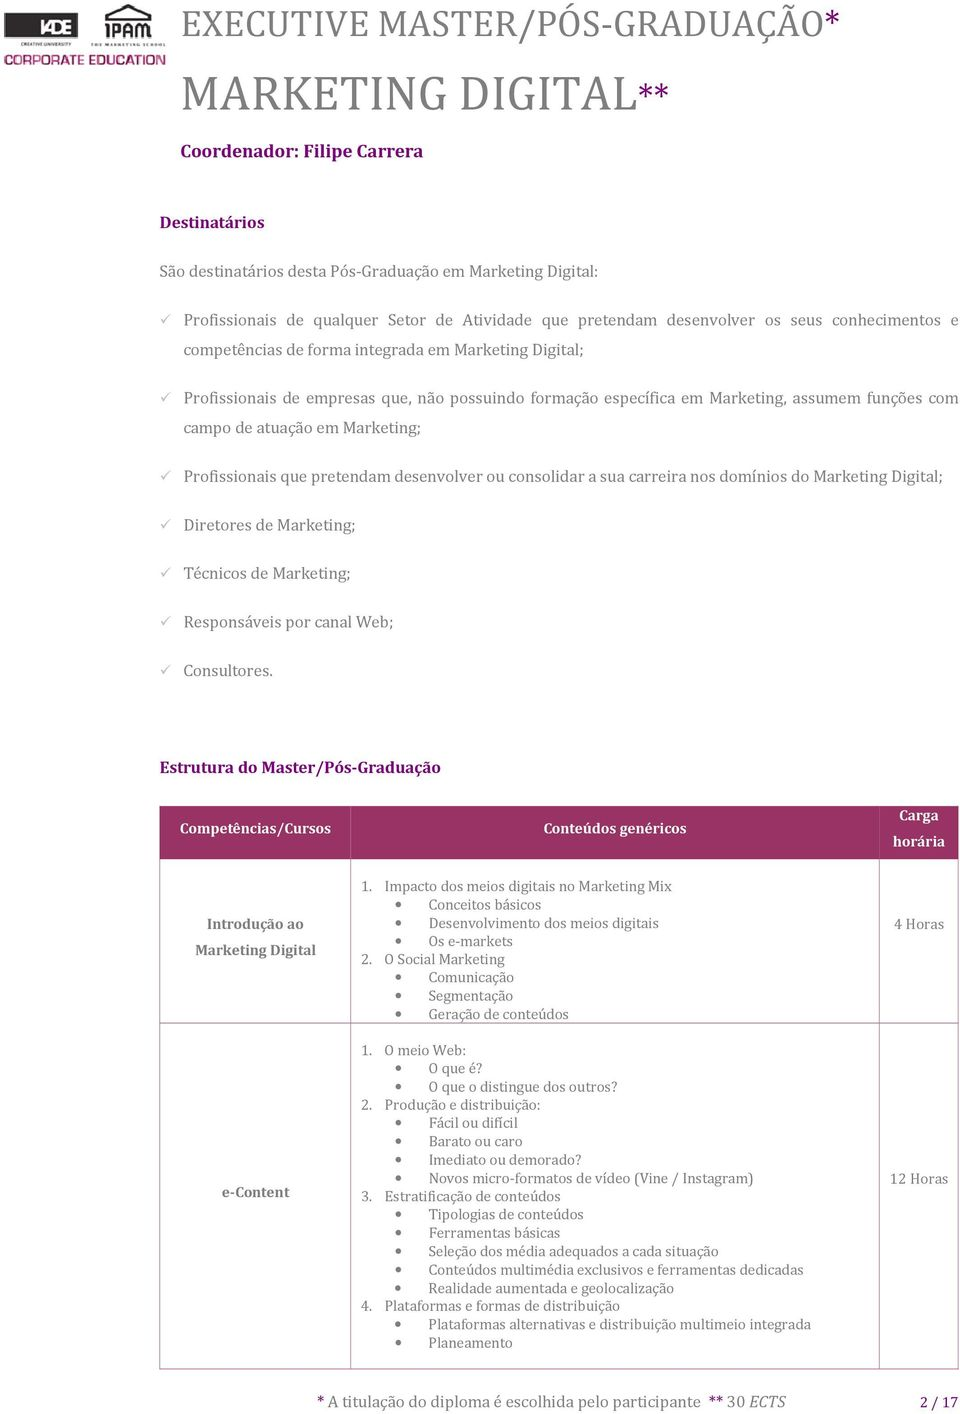 desenvolver ou consolidar a sua carreira nos domínios do Marketing Digital; Diretores de Marketing; Técnicos de Marketing; Responsáveis por canal Web; Consultores.